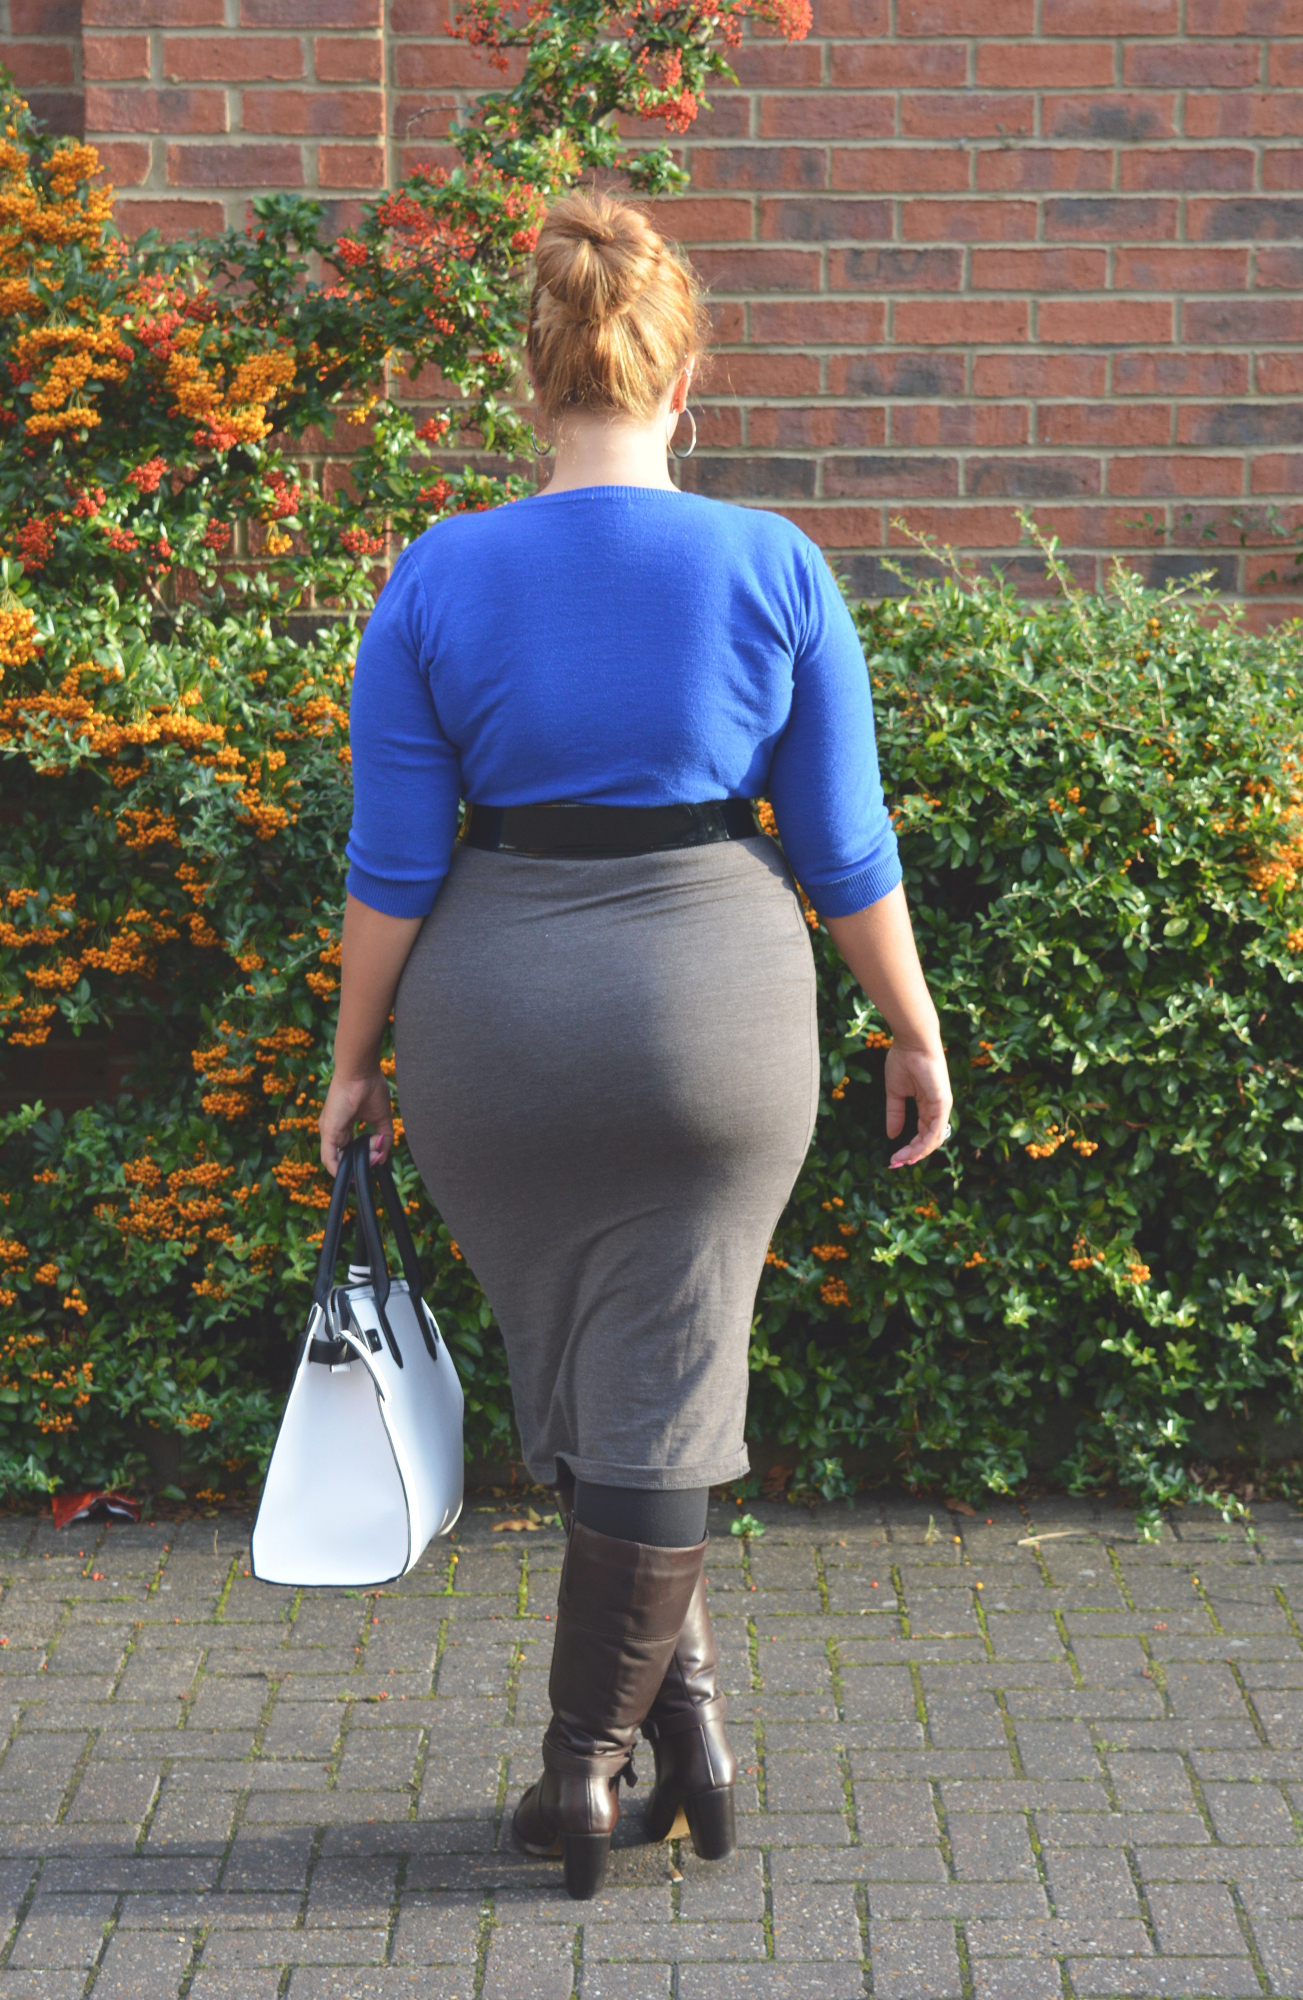 Elegant girls walk around the house showing off their fabulous asses - 3 4